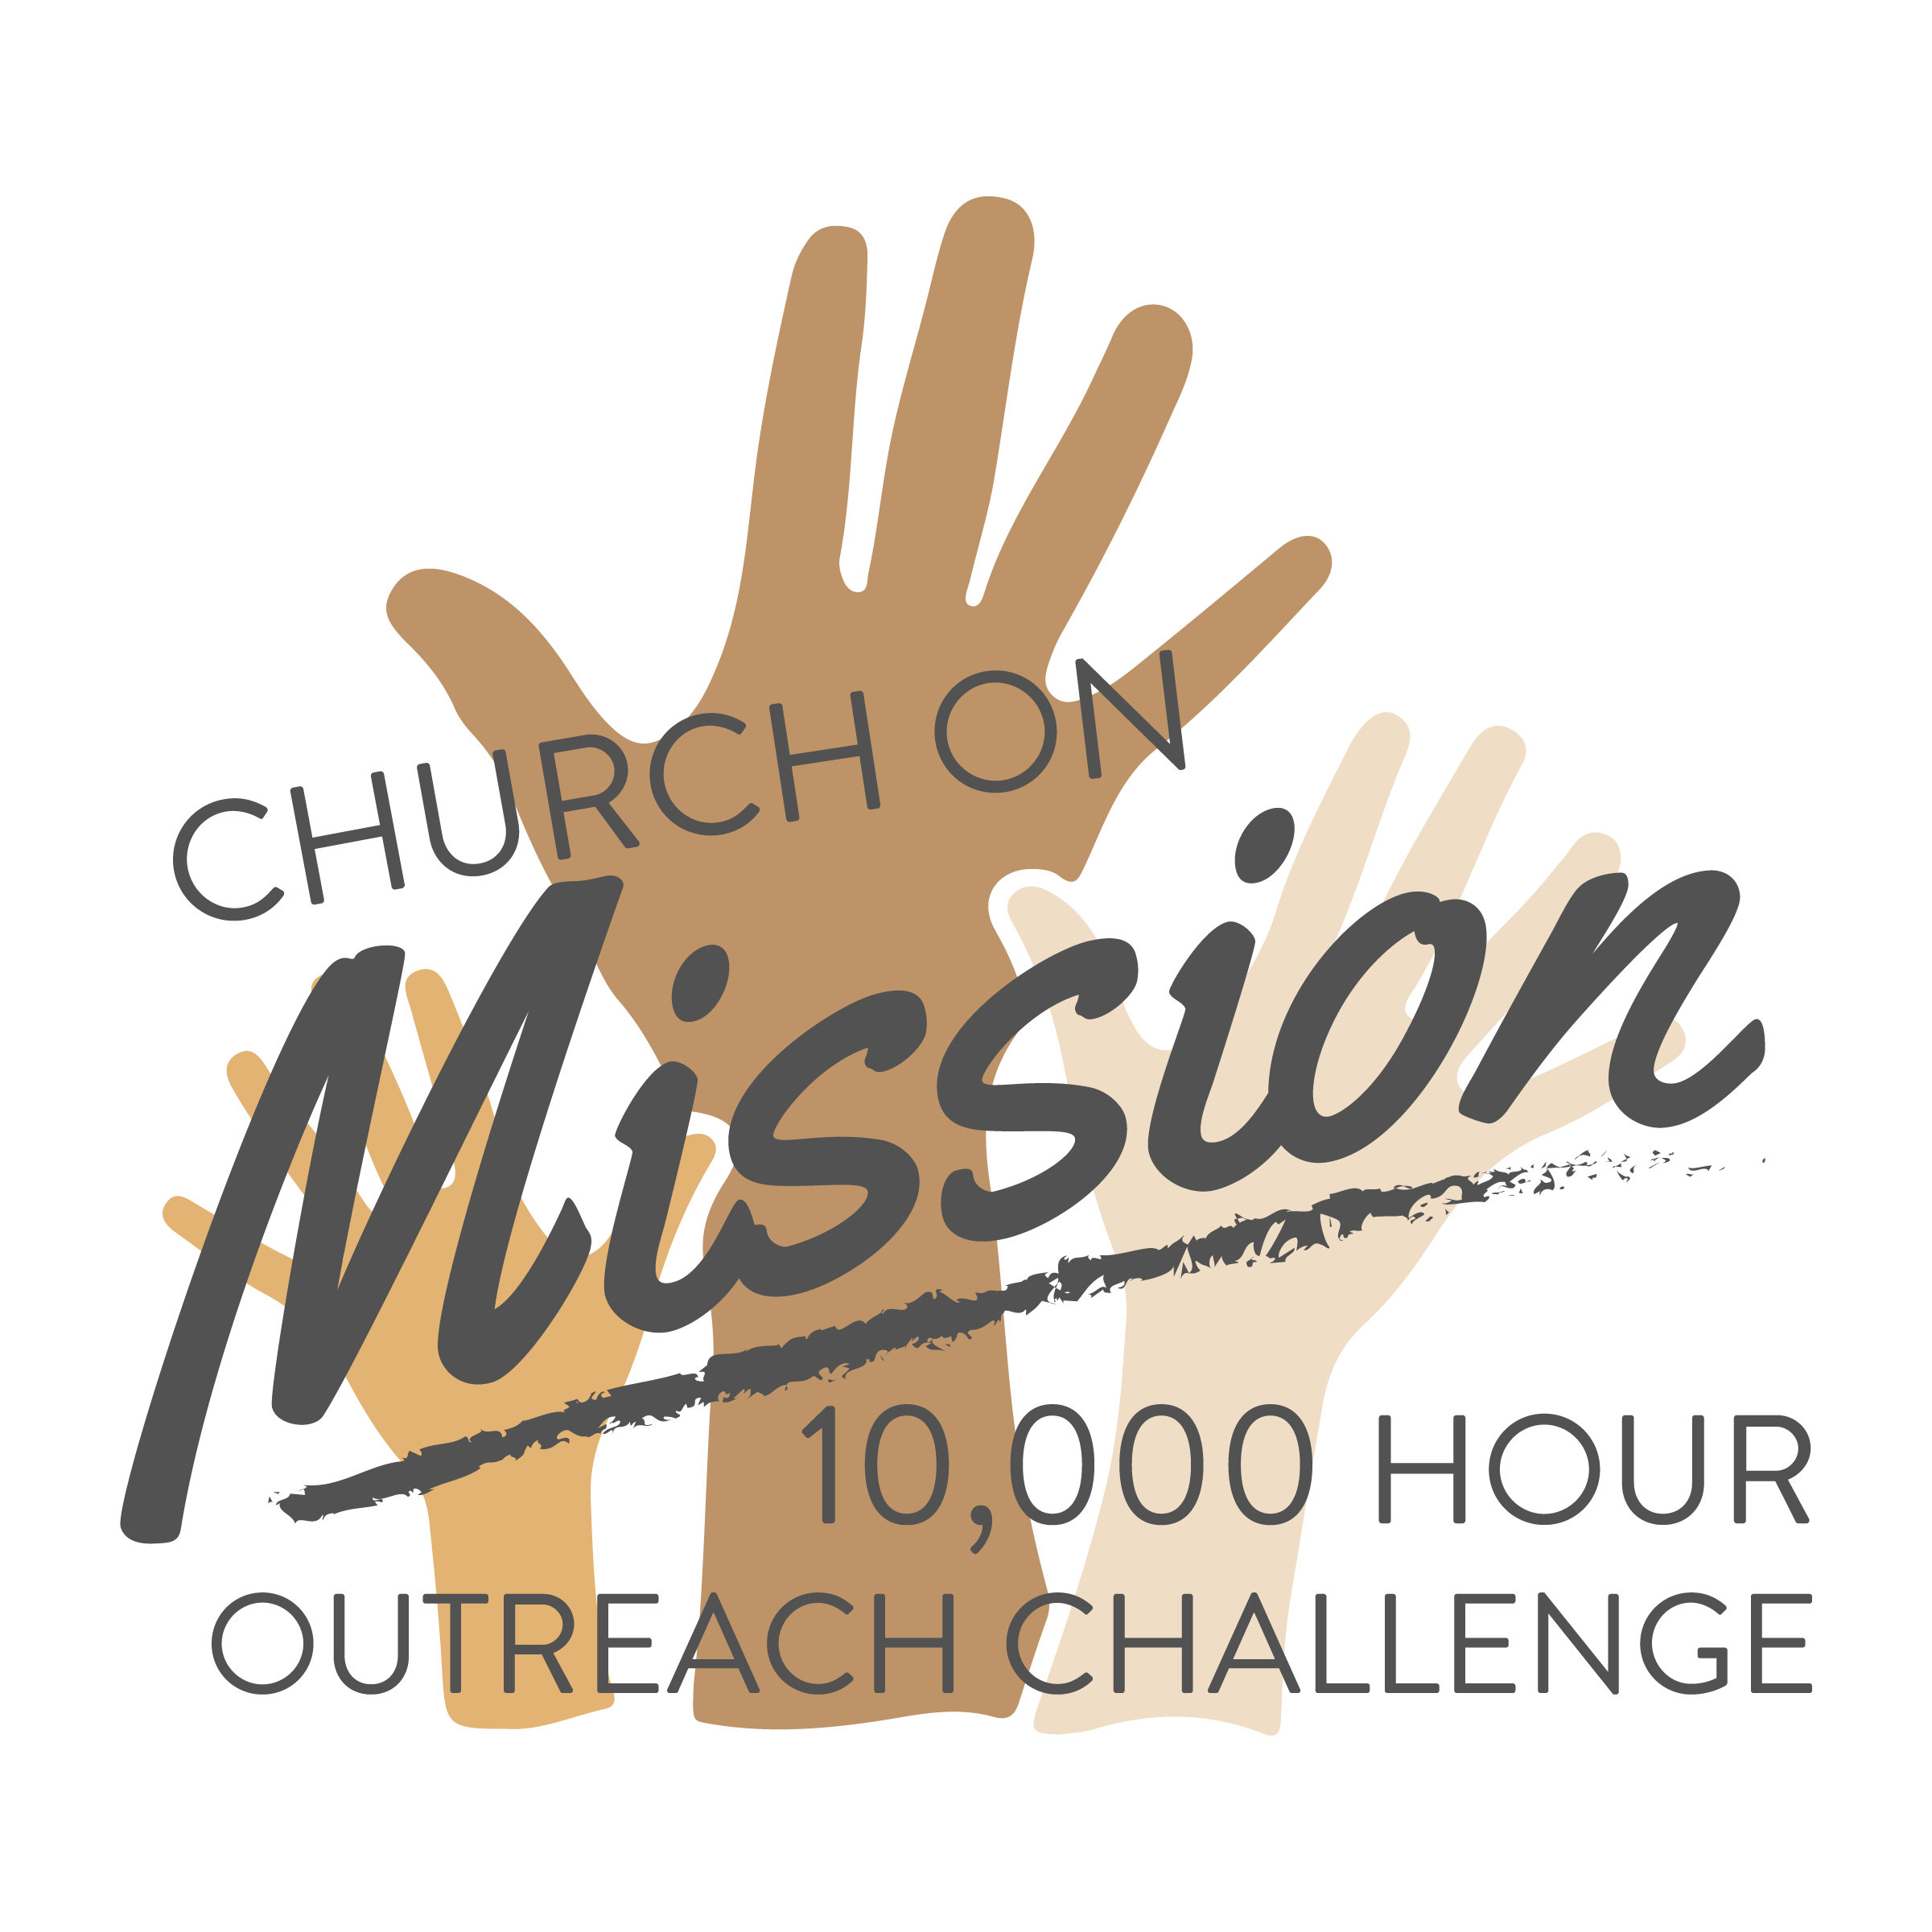 Church on Mission300.png